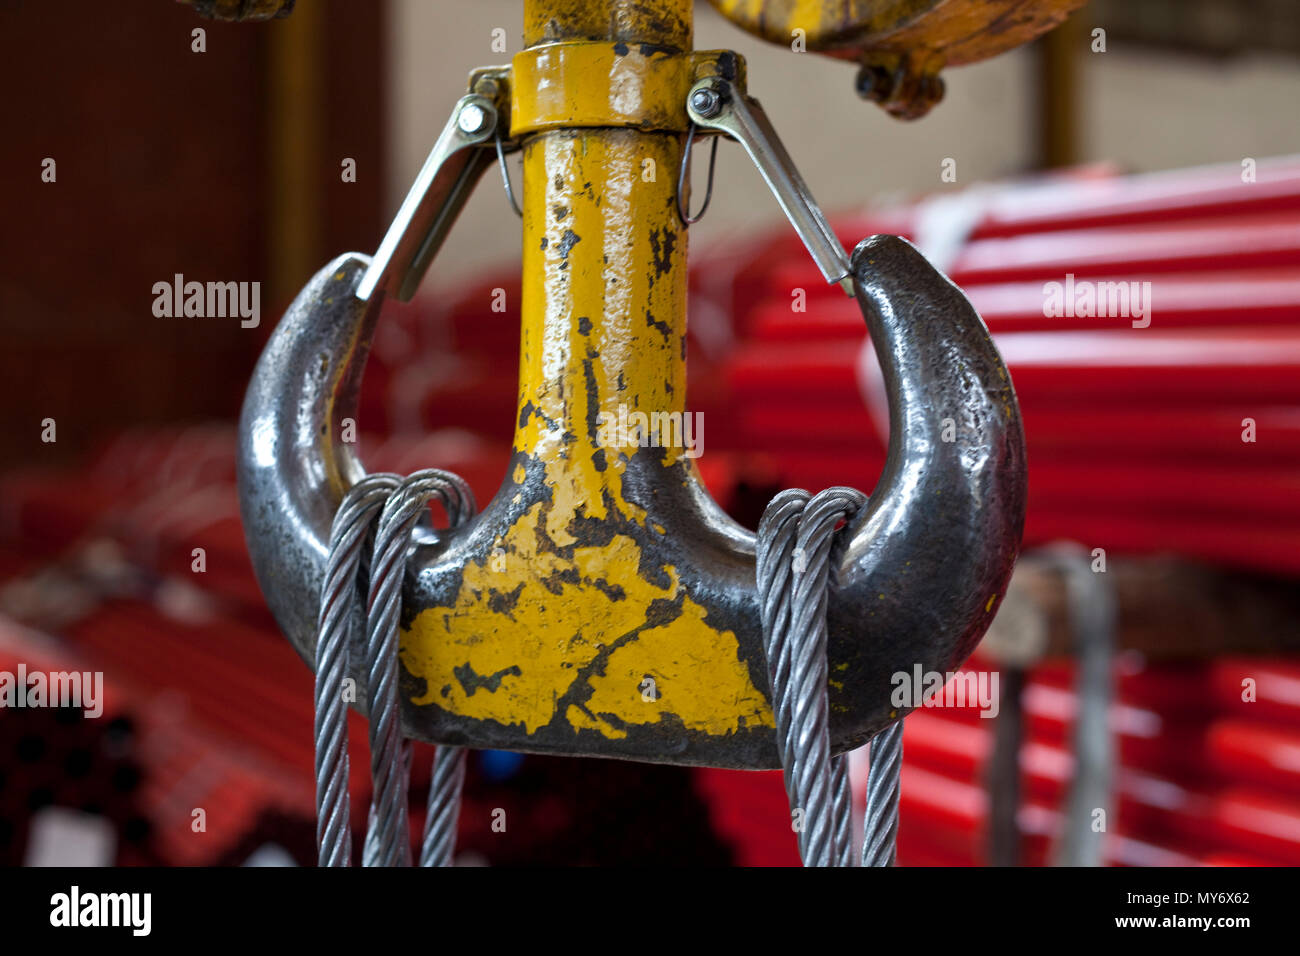 closup on yellow industrial hook with steel cables Stock Photo